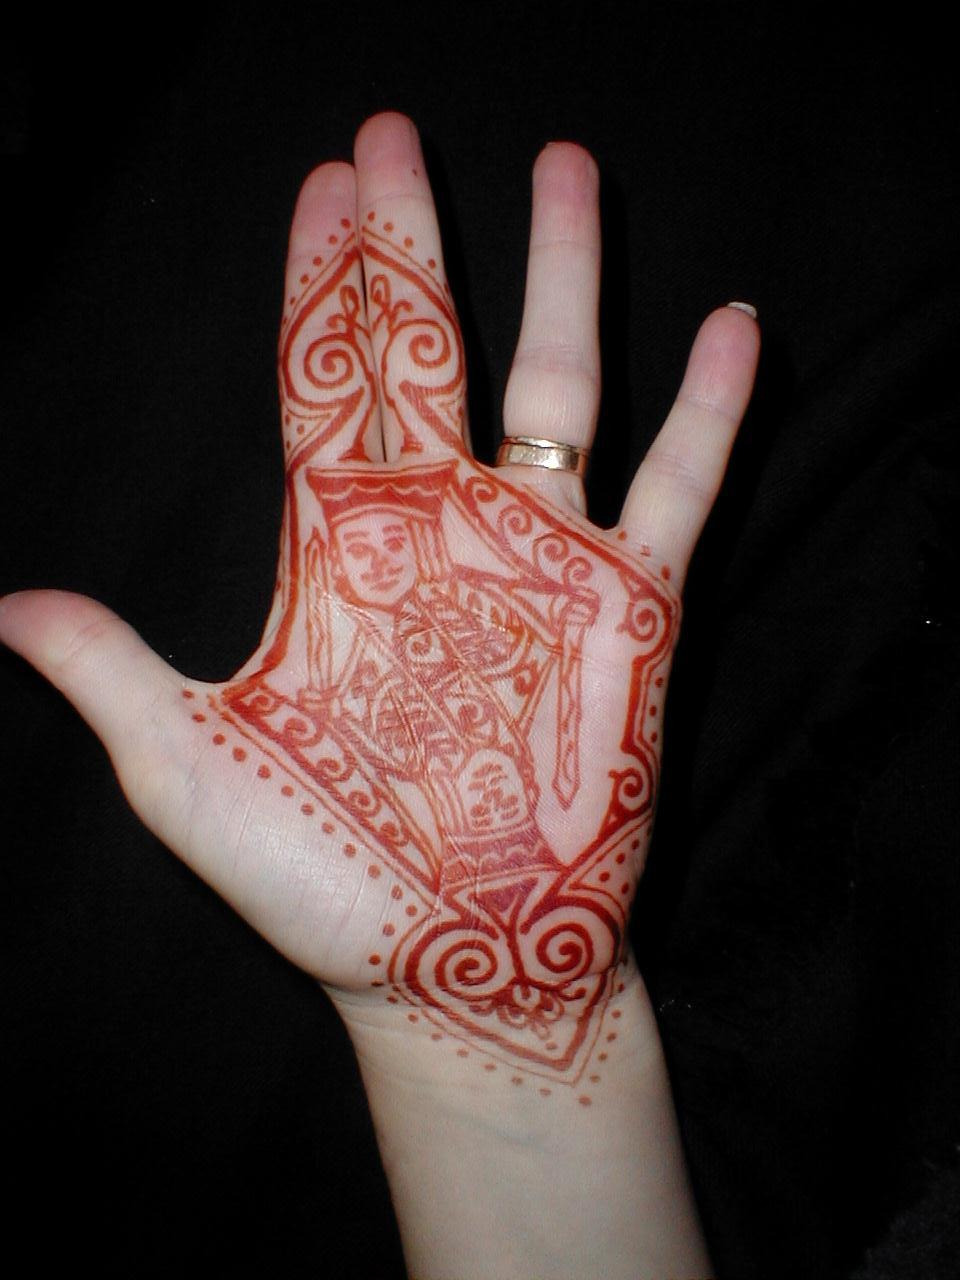 Henna tattoo for hands design for Henna tattoo designs for hands